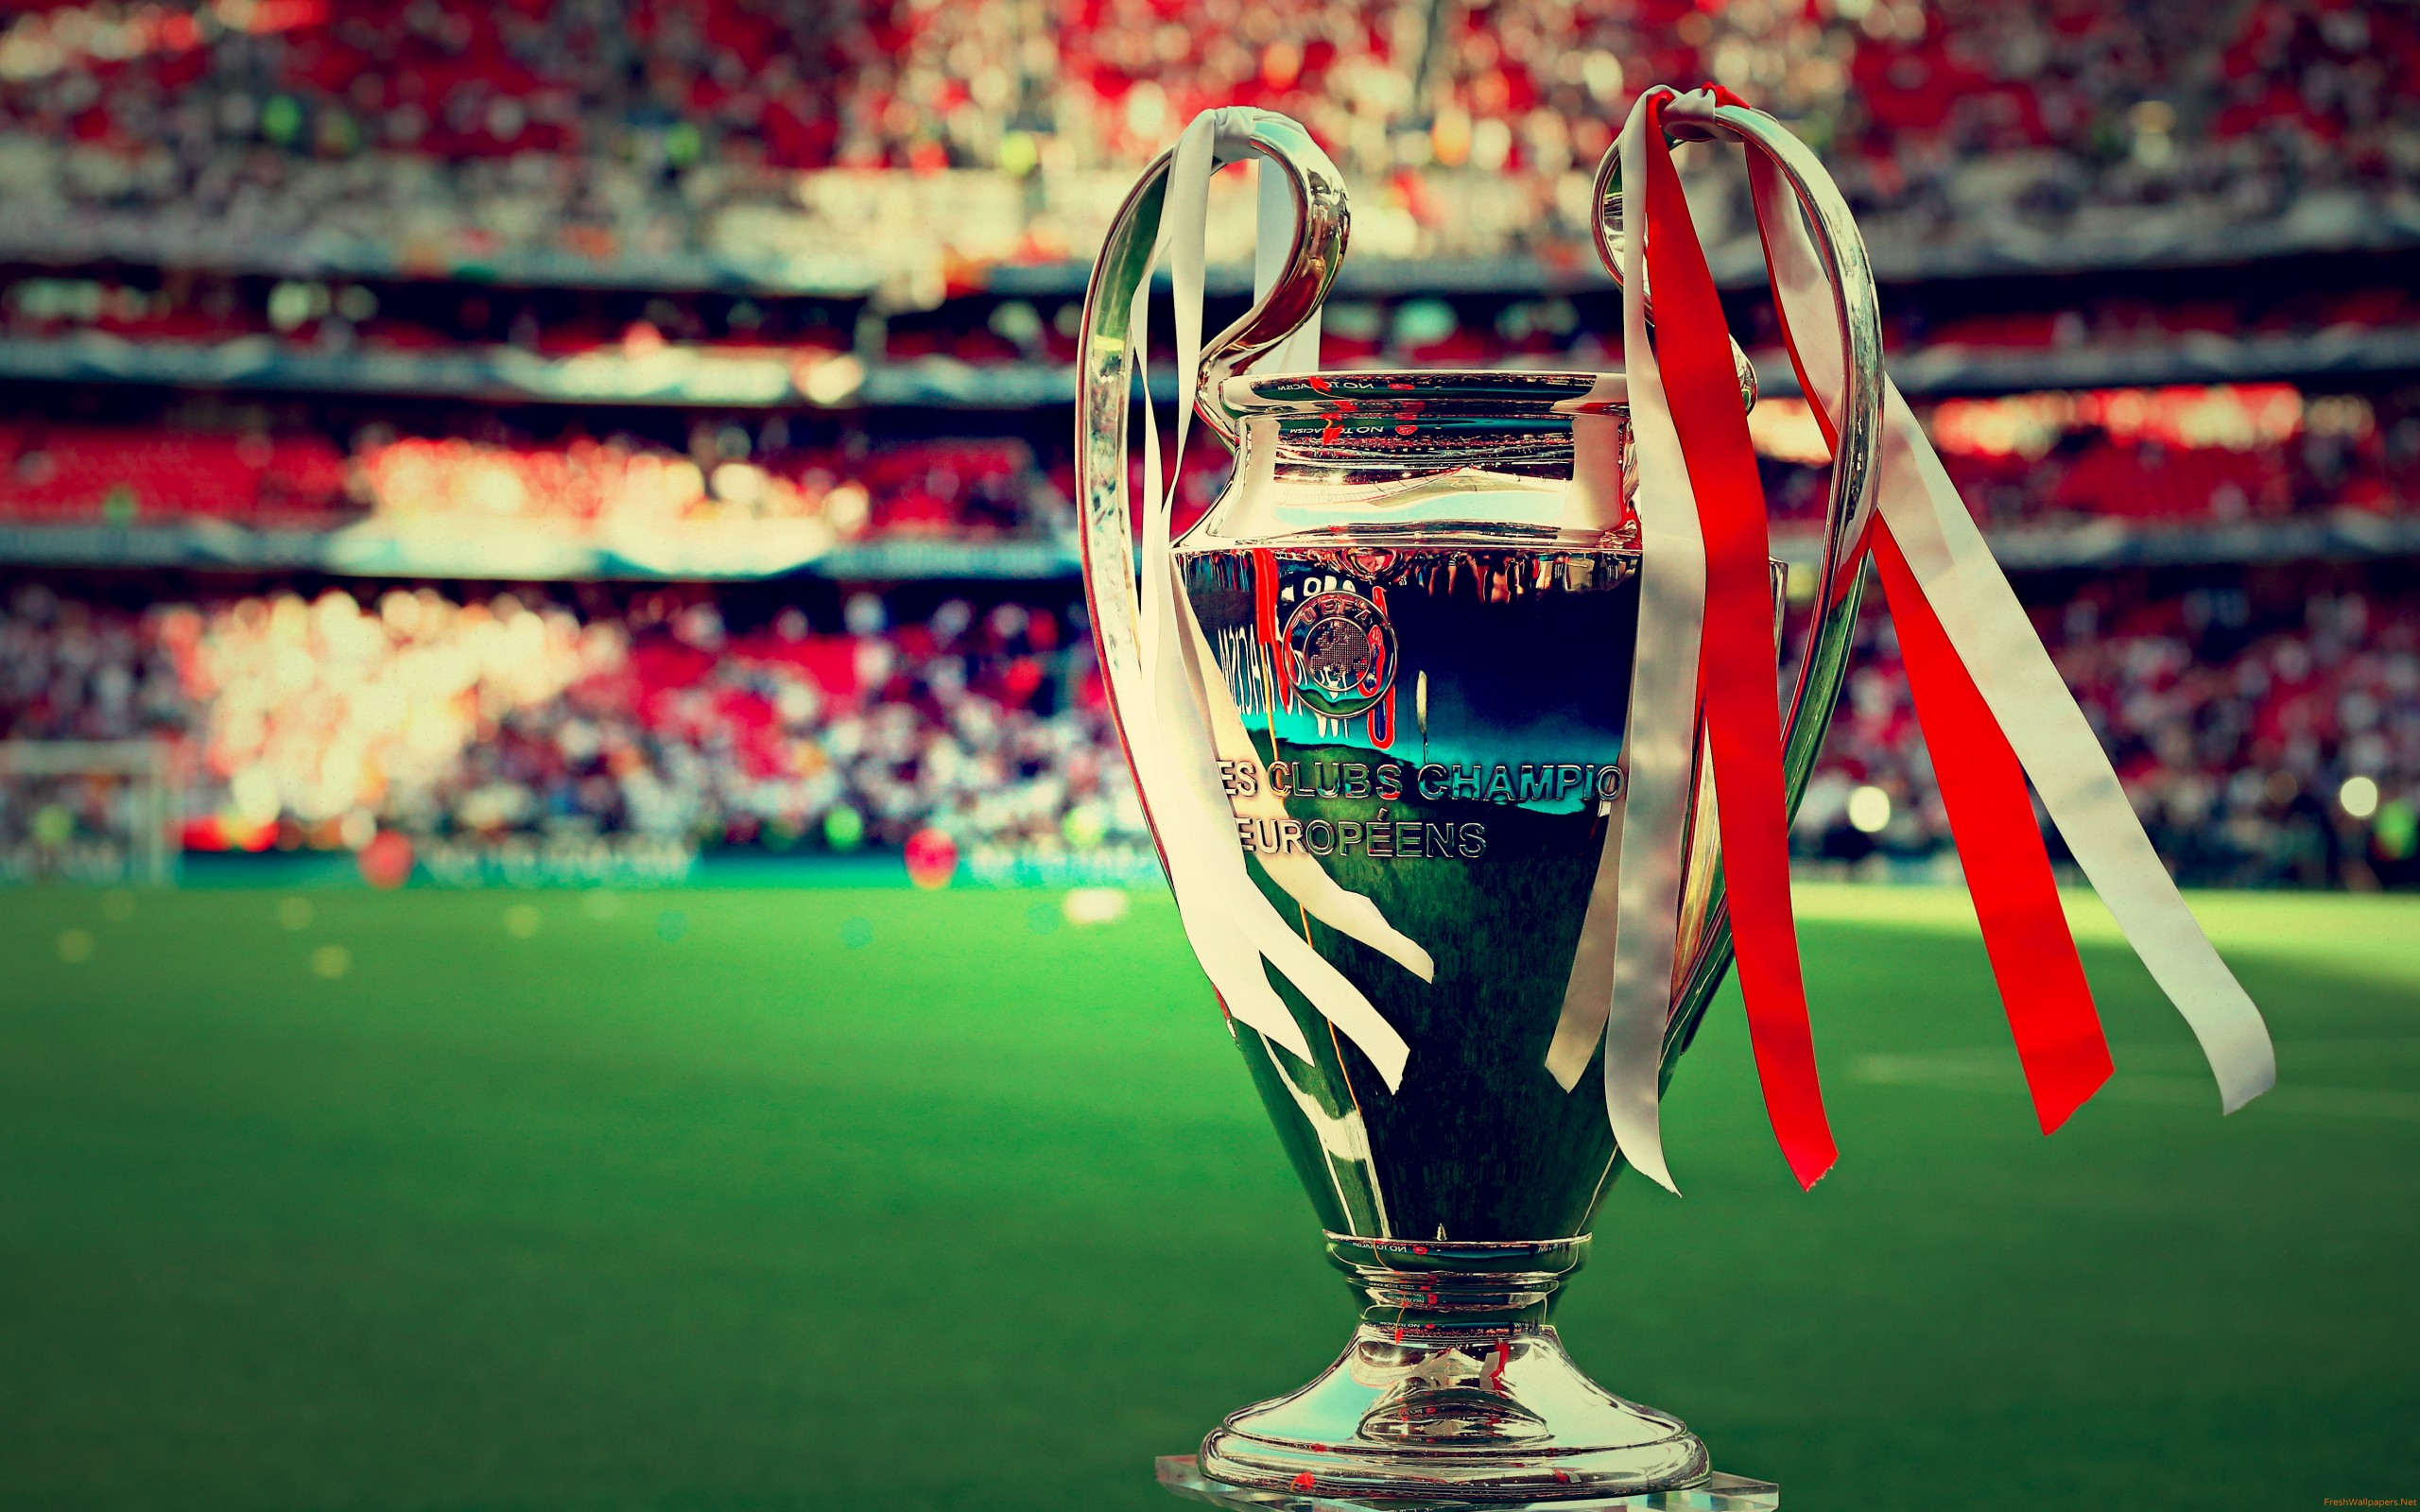 champions league trophy wallpaper 4k 2560x1600 wallpaper teahub io champions league trophy wallpaper 4k